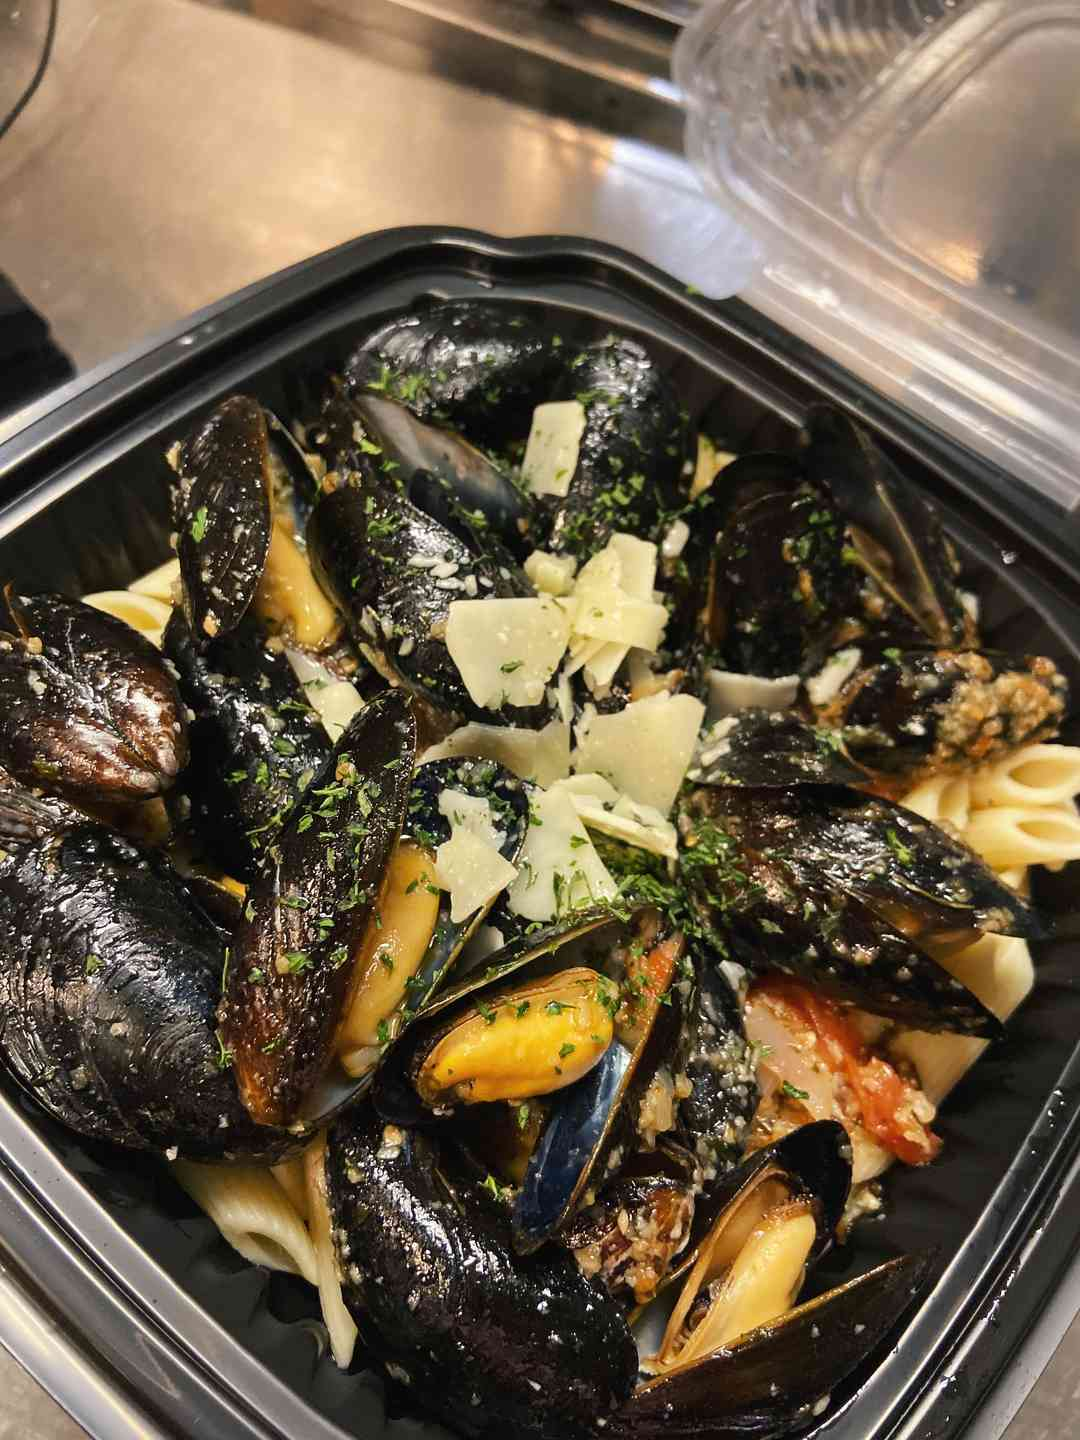 Mussels over Penne or Spaghetti